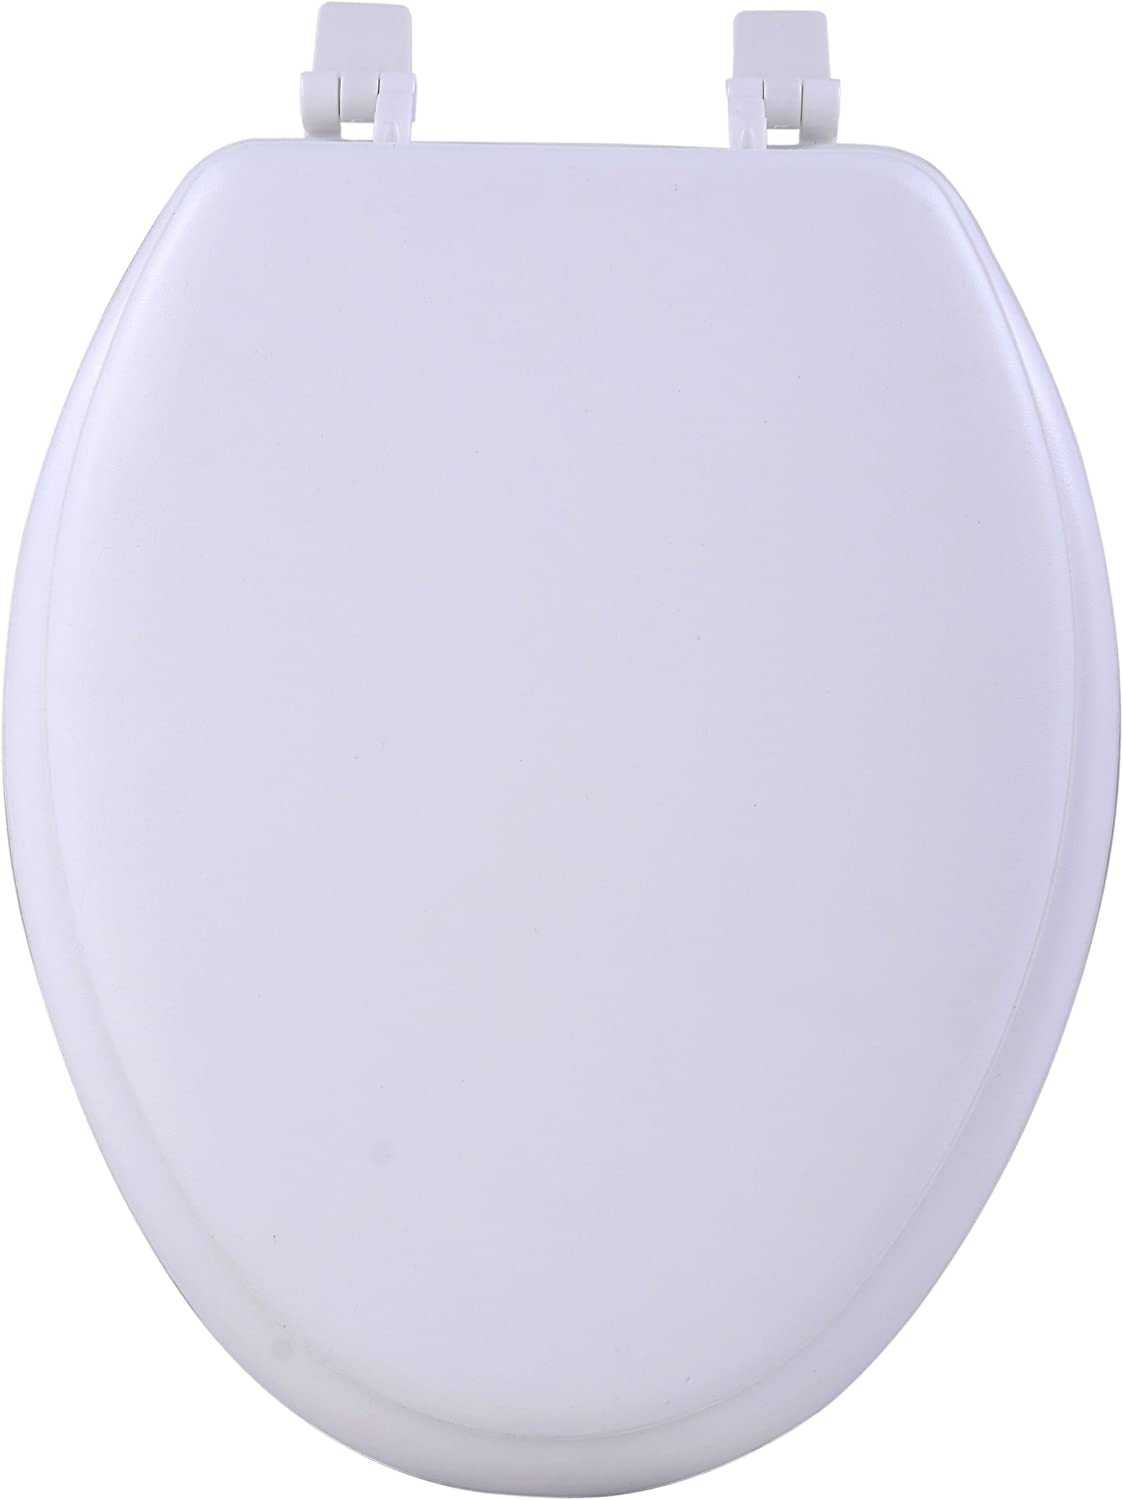 Achim Home Furnishings White TOVYELWH04 19-Inch Fantasia Elongated Toilet Seat, Soft